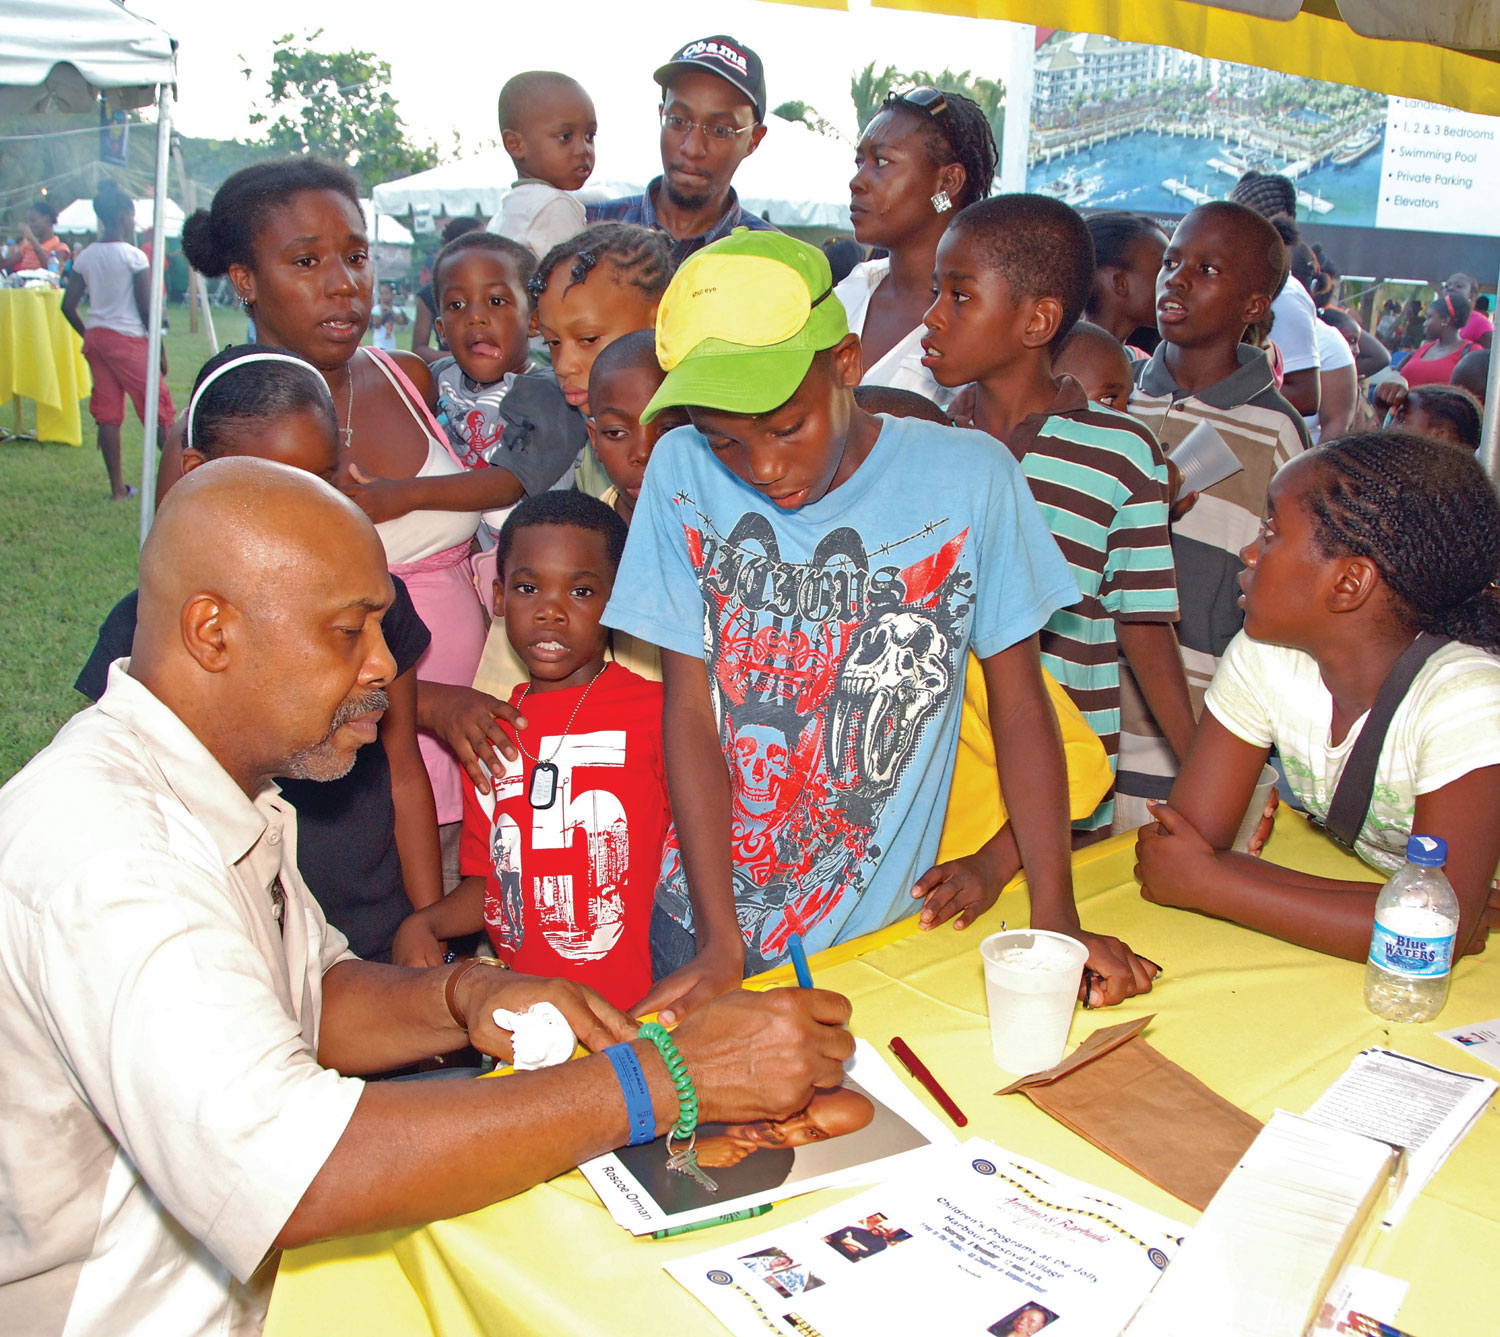 Roscoe Orman, who played Gordon on Sesame Street for many years, delighted children at the Antigua & Barbuda Literary Festival Village in November 2008.